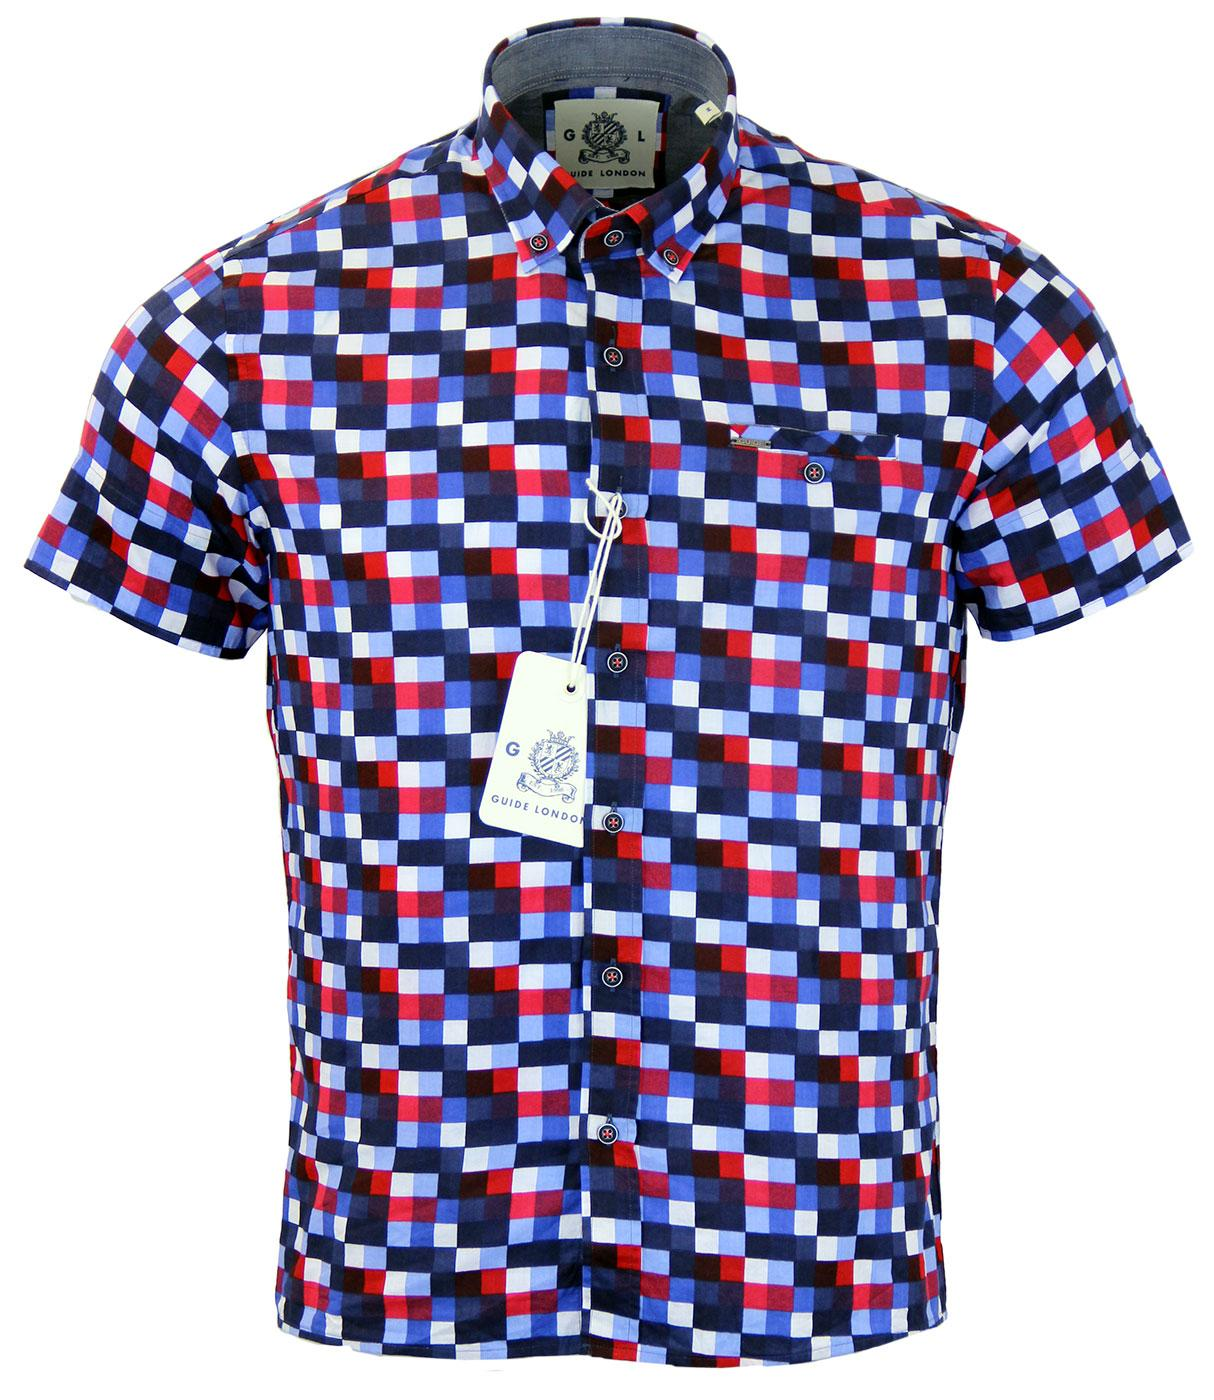 GUIDE LONDON Retro Mod Colour Block Check Shirt